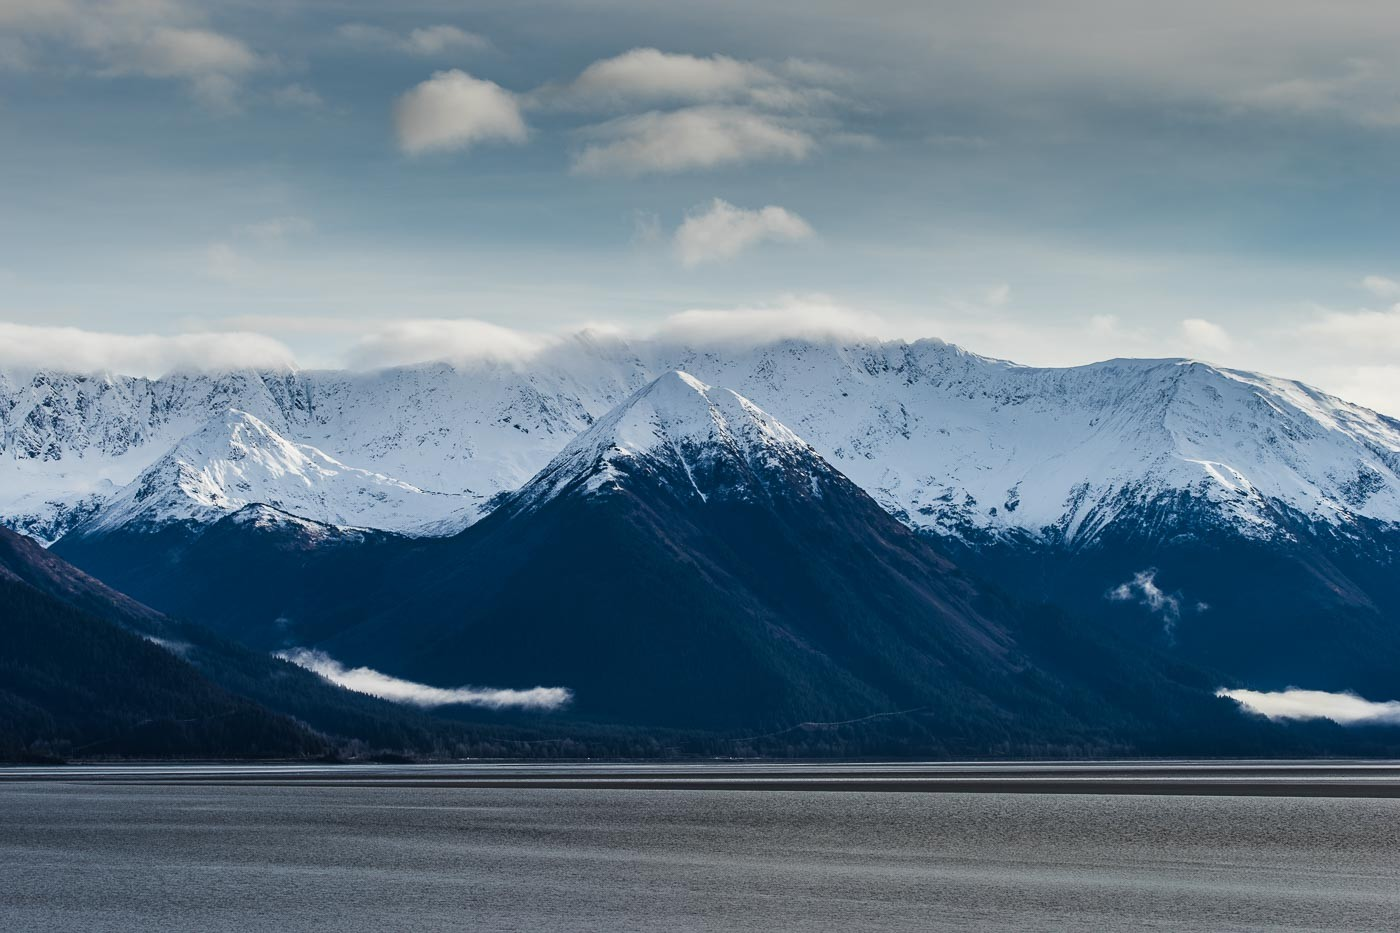 Turnagain Arm, Alaska with the Tamron 150-600mm f/5-6.3